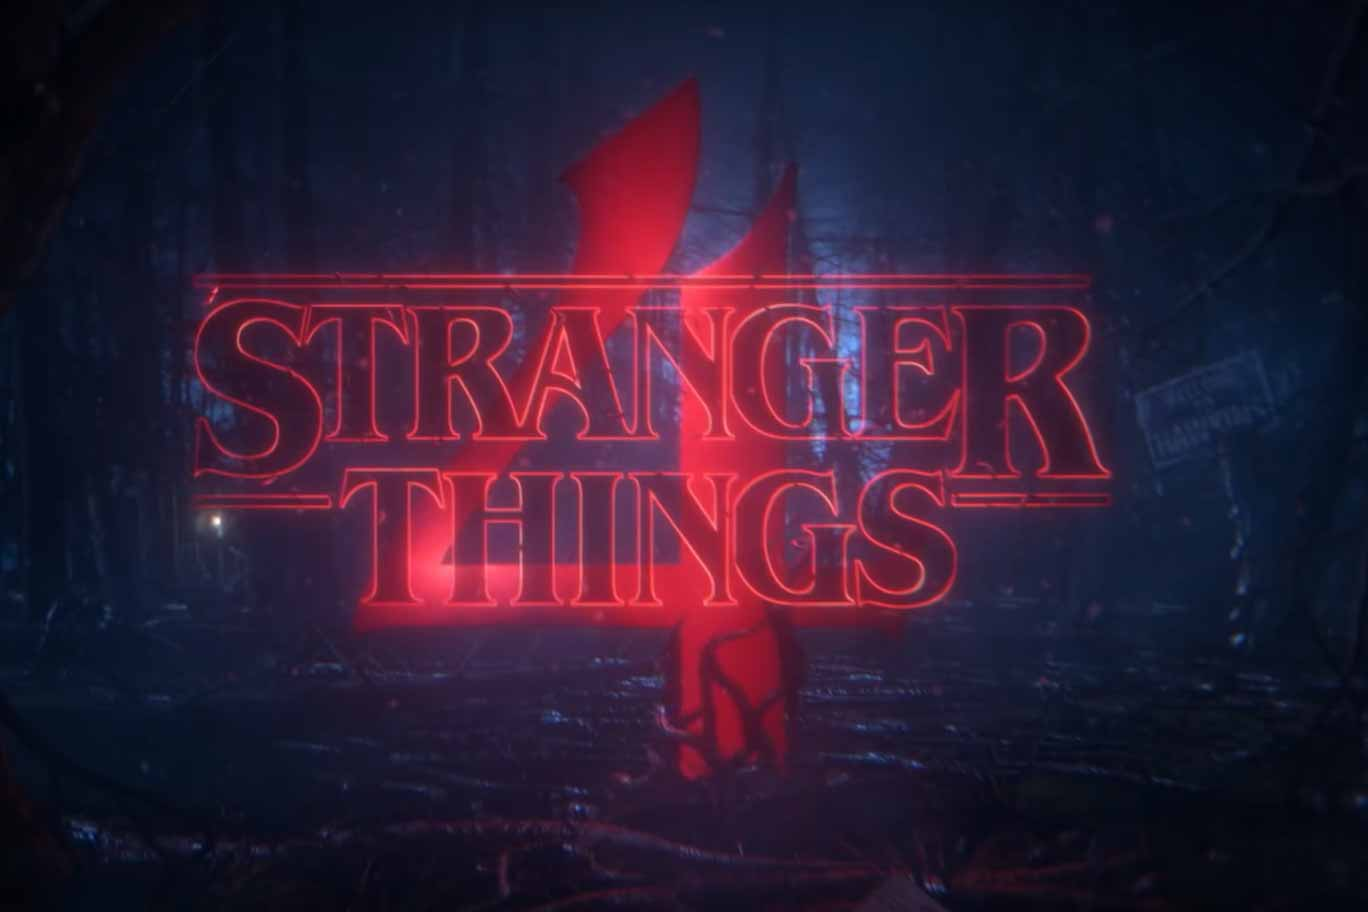 Stranger things 4 de Netflix